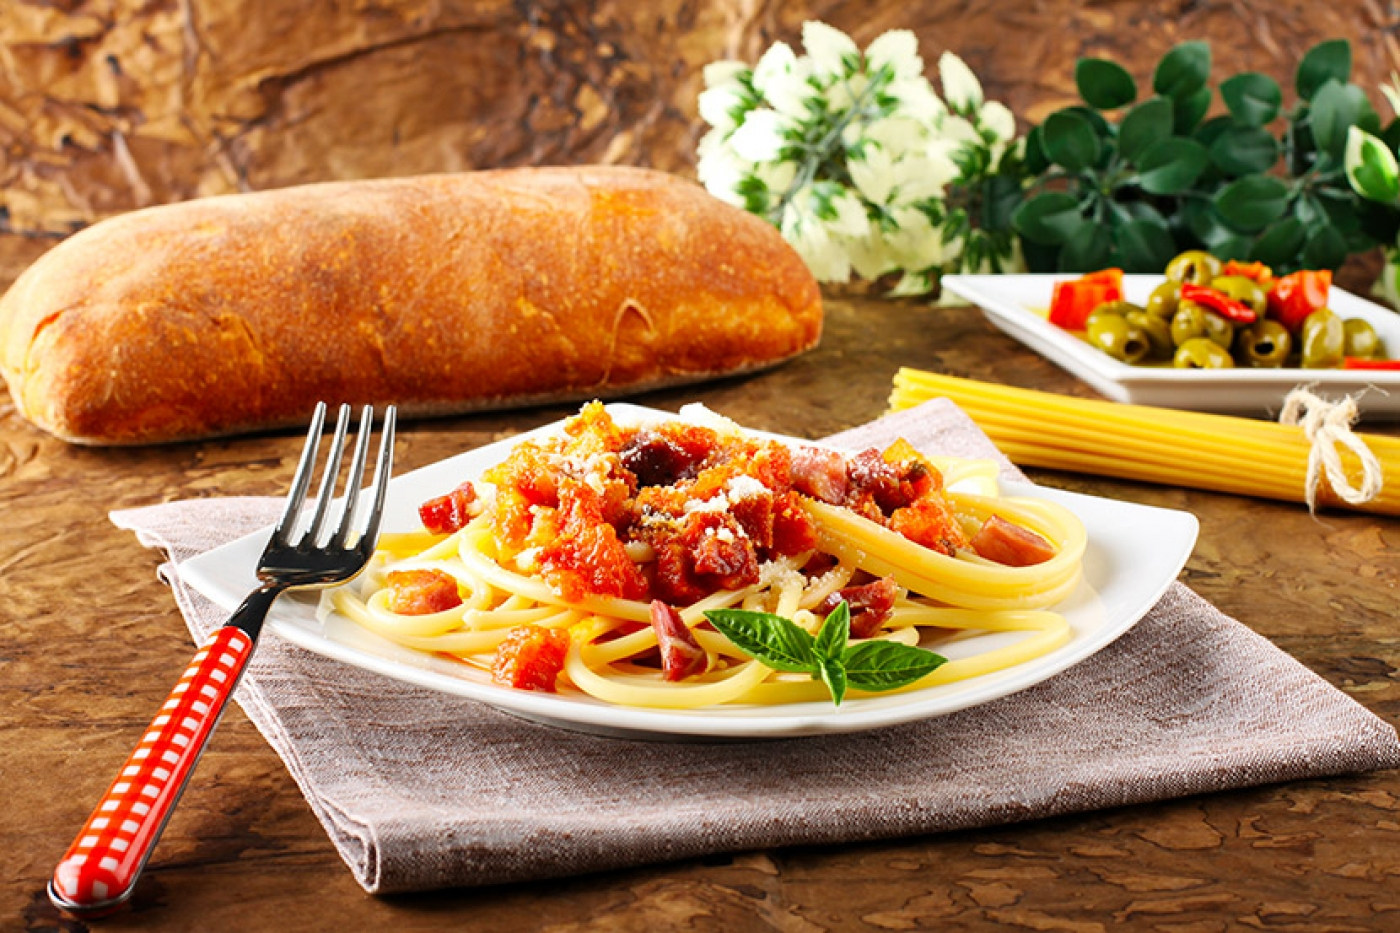 A Tour Of Central Italian Cuisine By Region